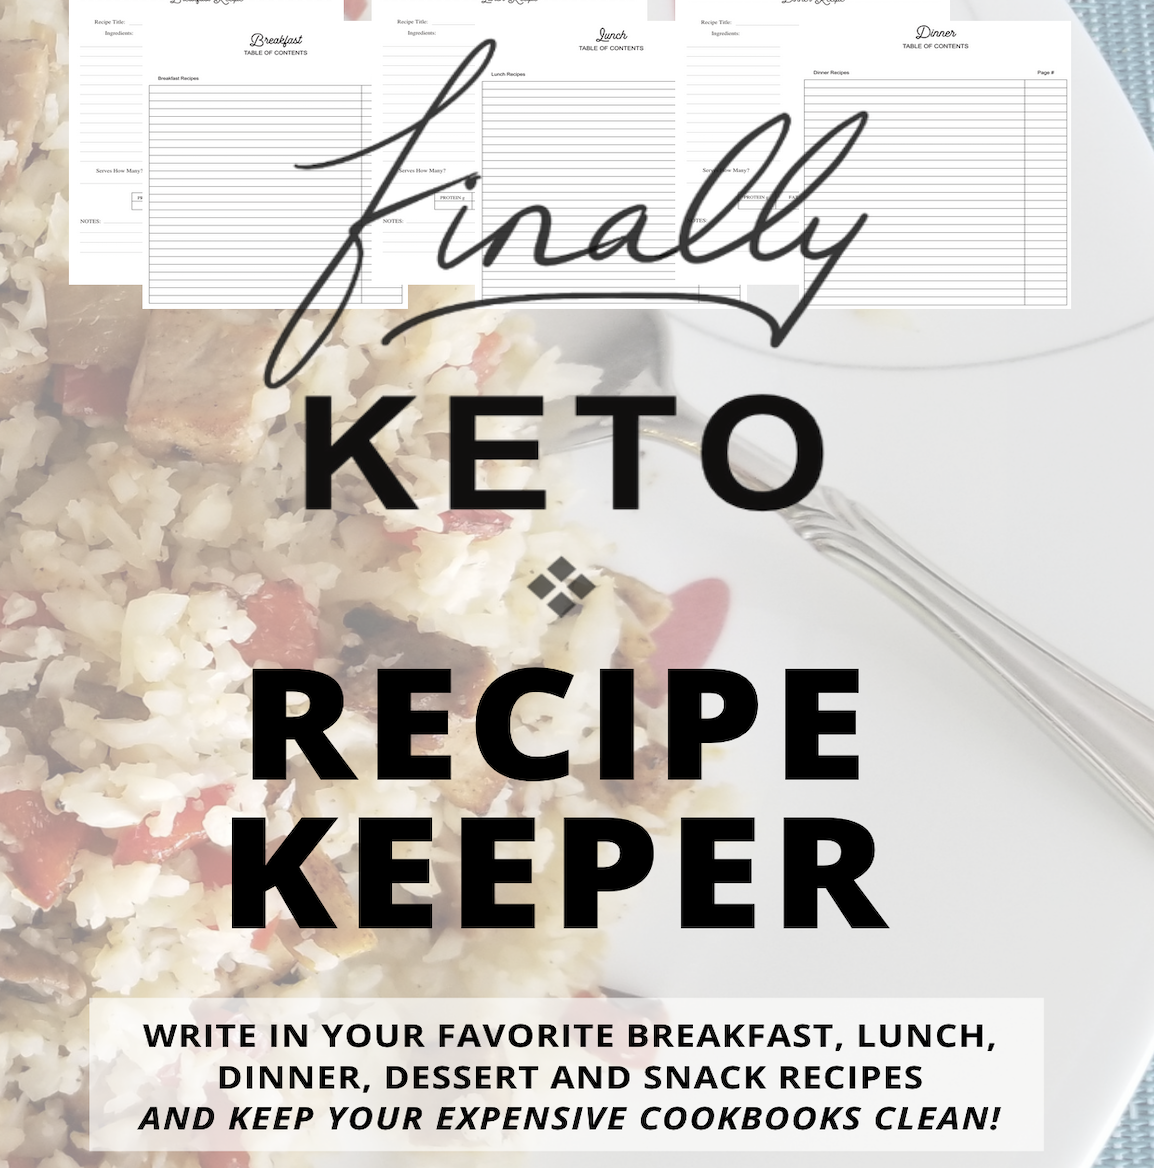 Finally Keto Recipe Keeper